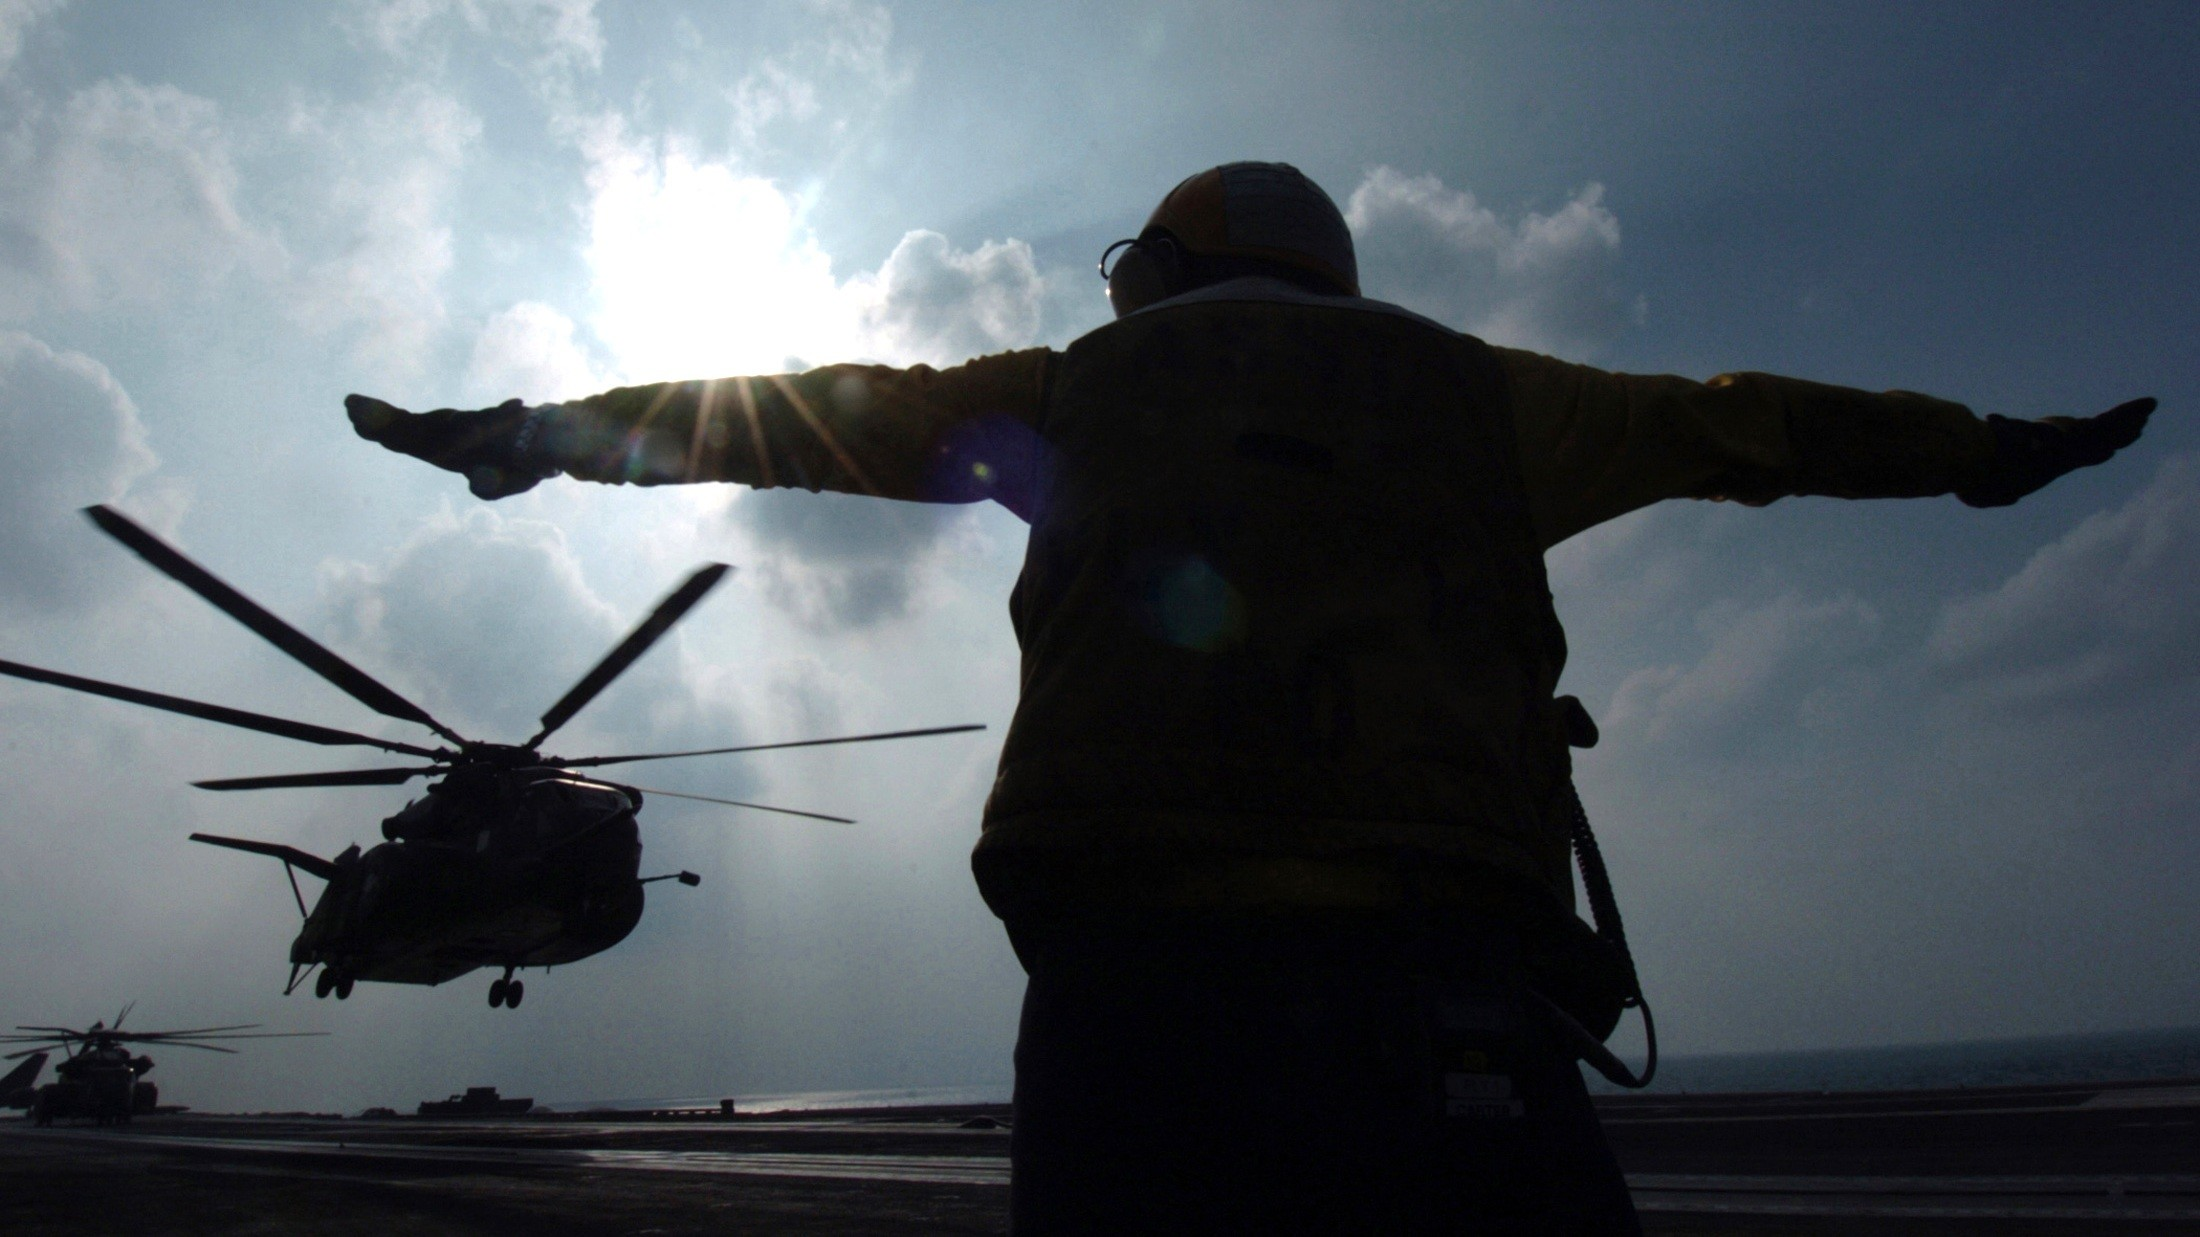 … navy wallpaper 4 US serviceman signals helicopter at the Gulf south of  Iraq …